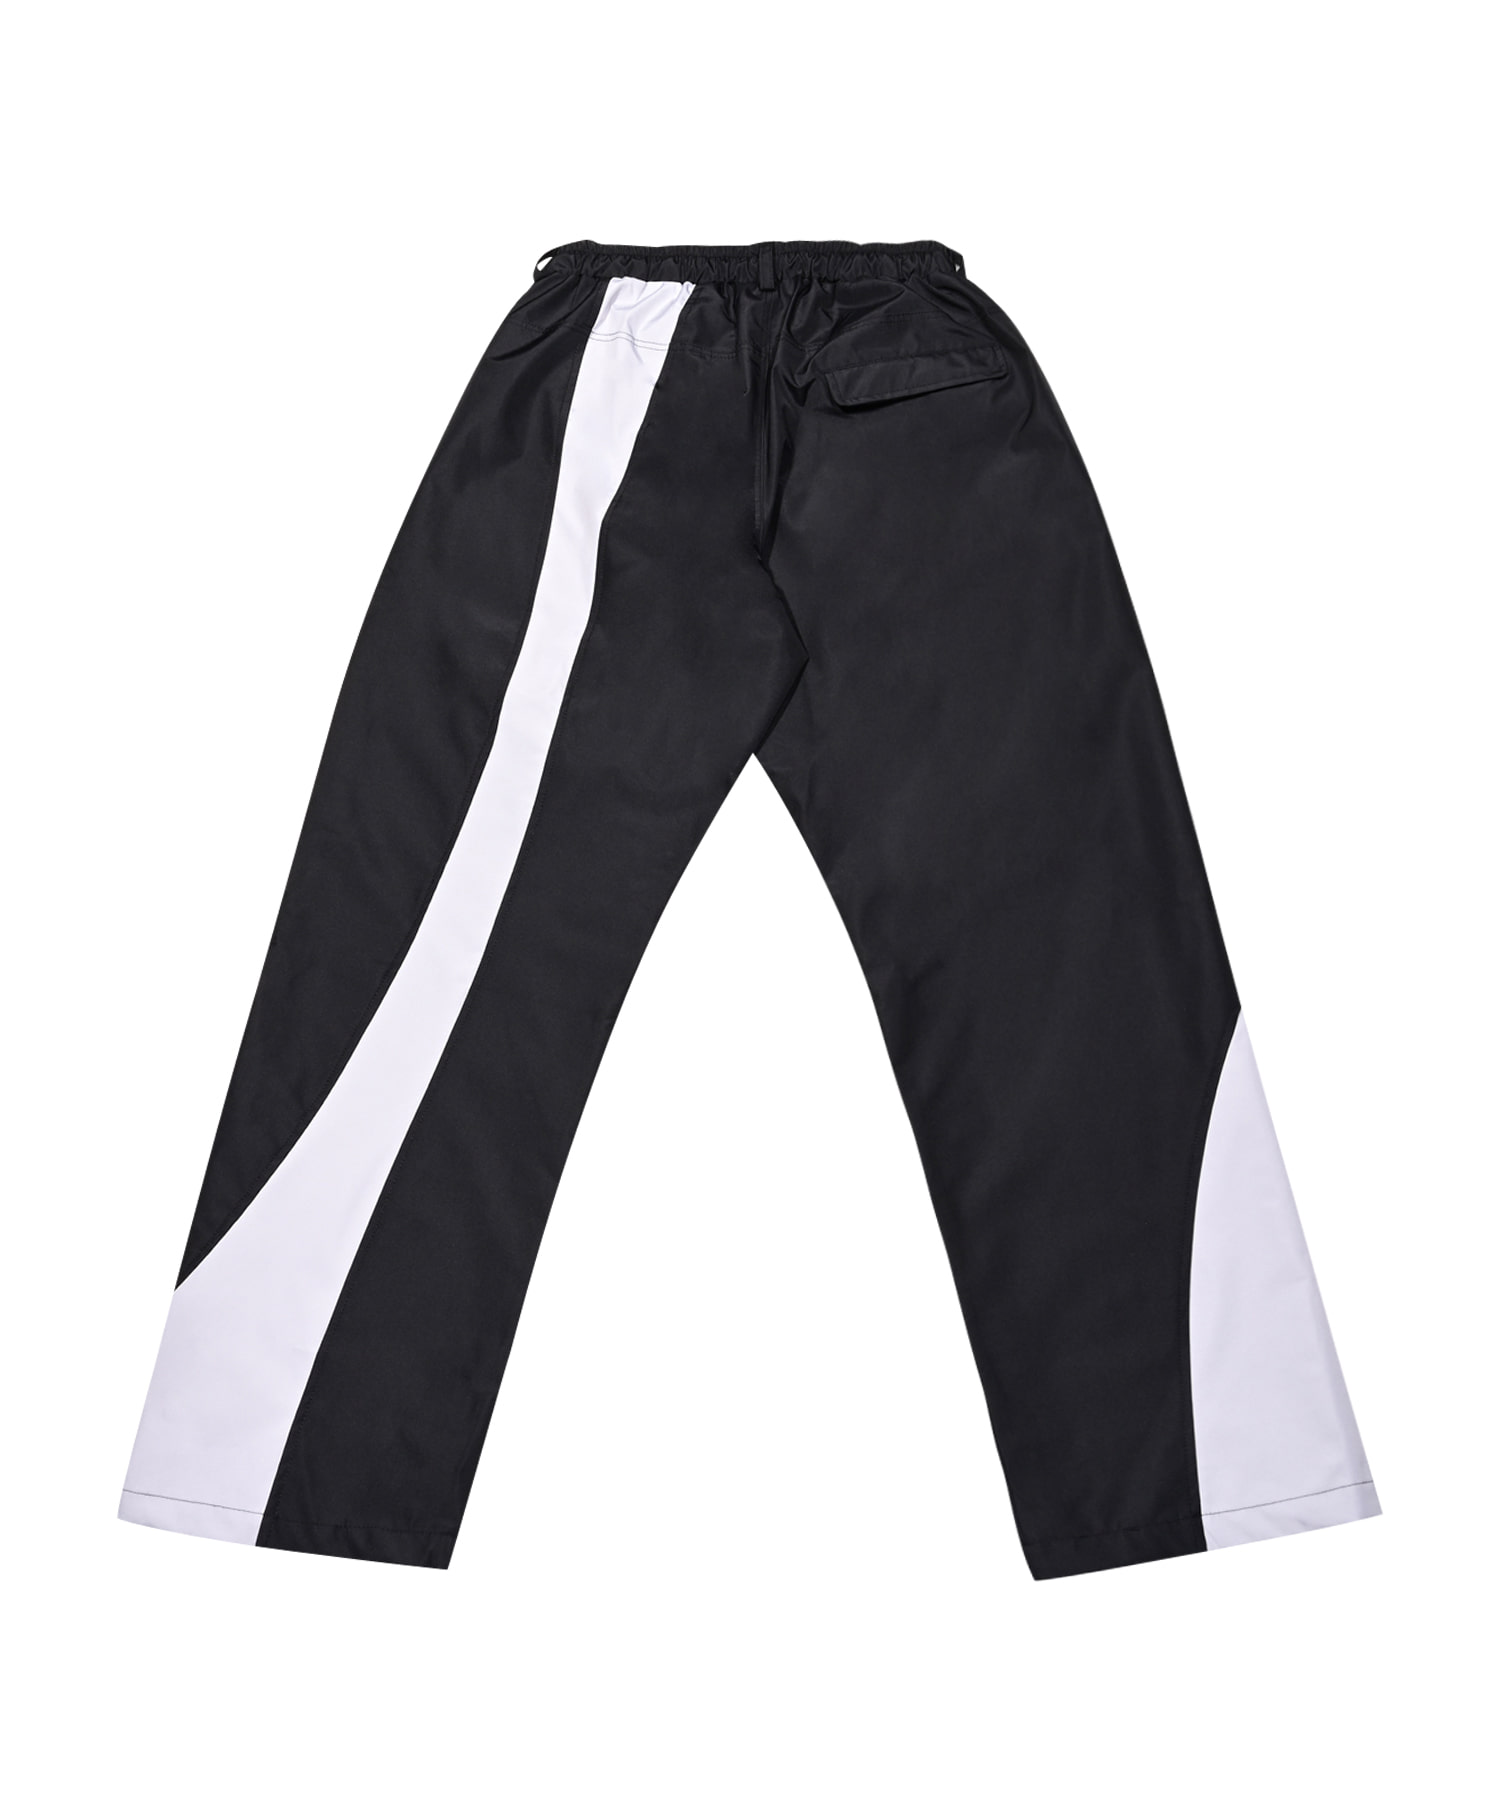 WIND BLOCK PANTS BLACK